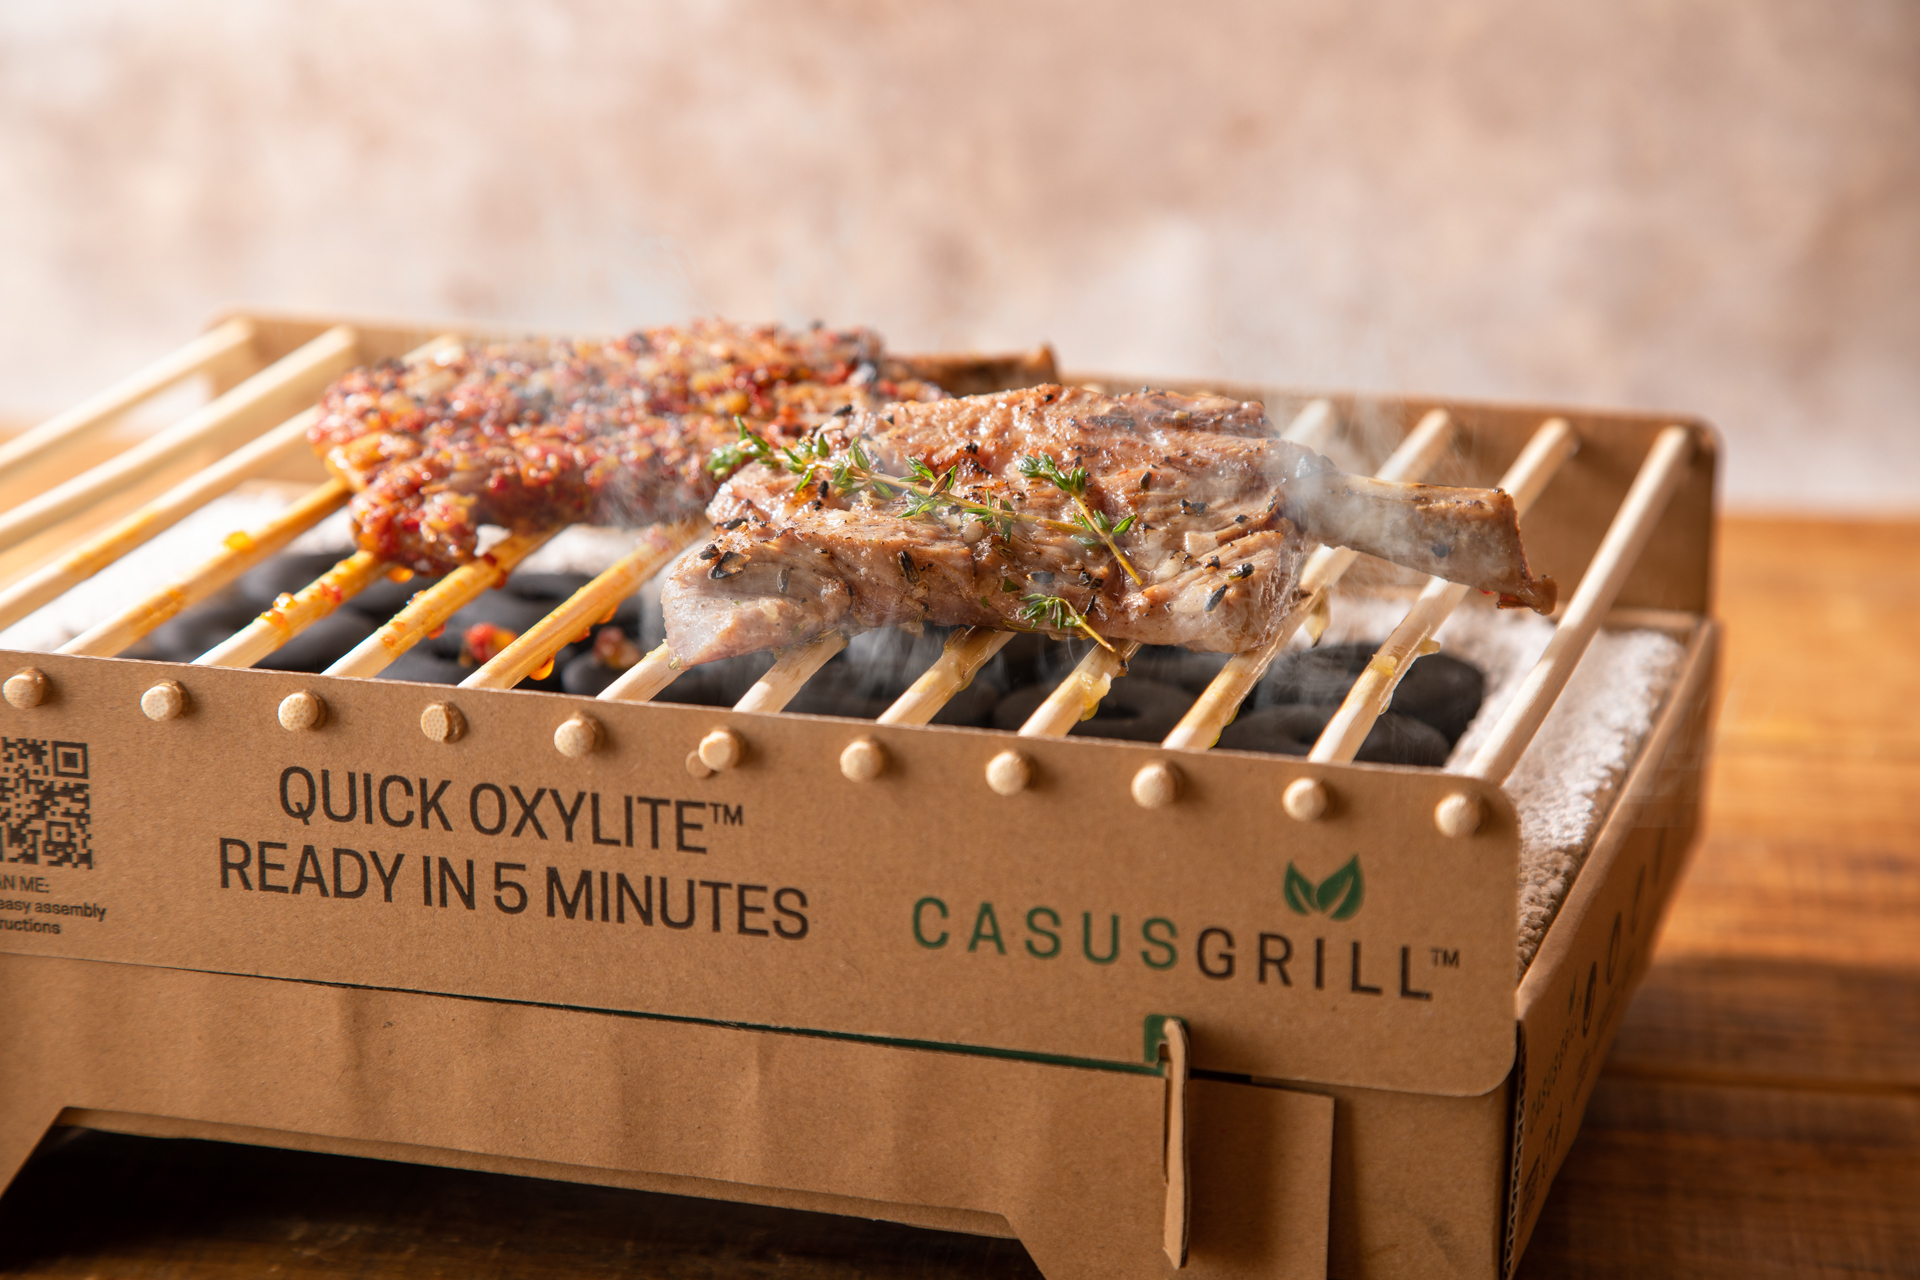 This lamb yakiniku restaurant in Tokyo is offering takeout with disposable grills